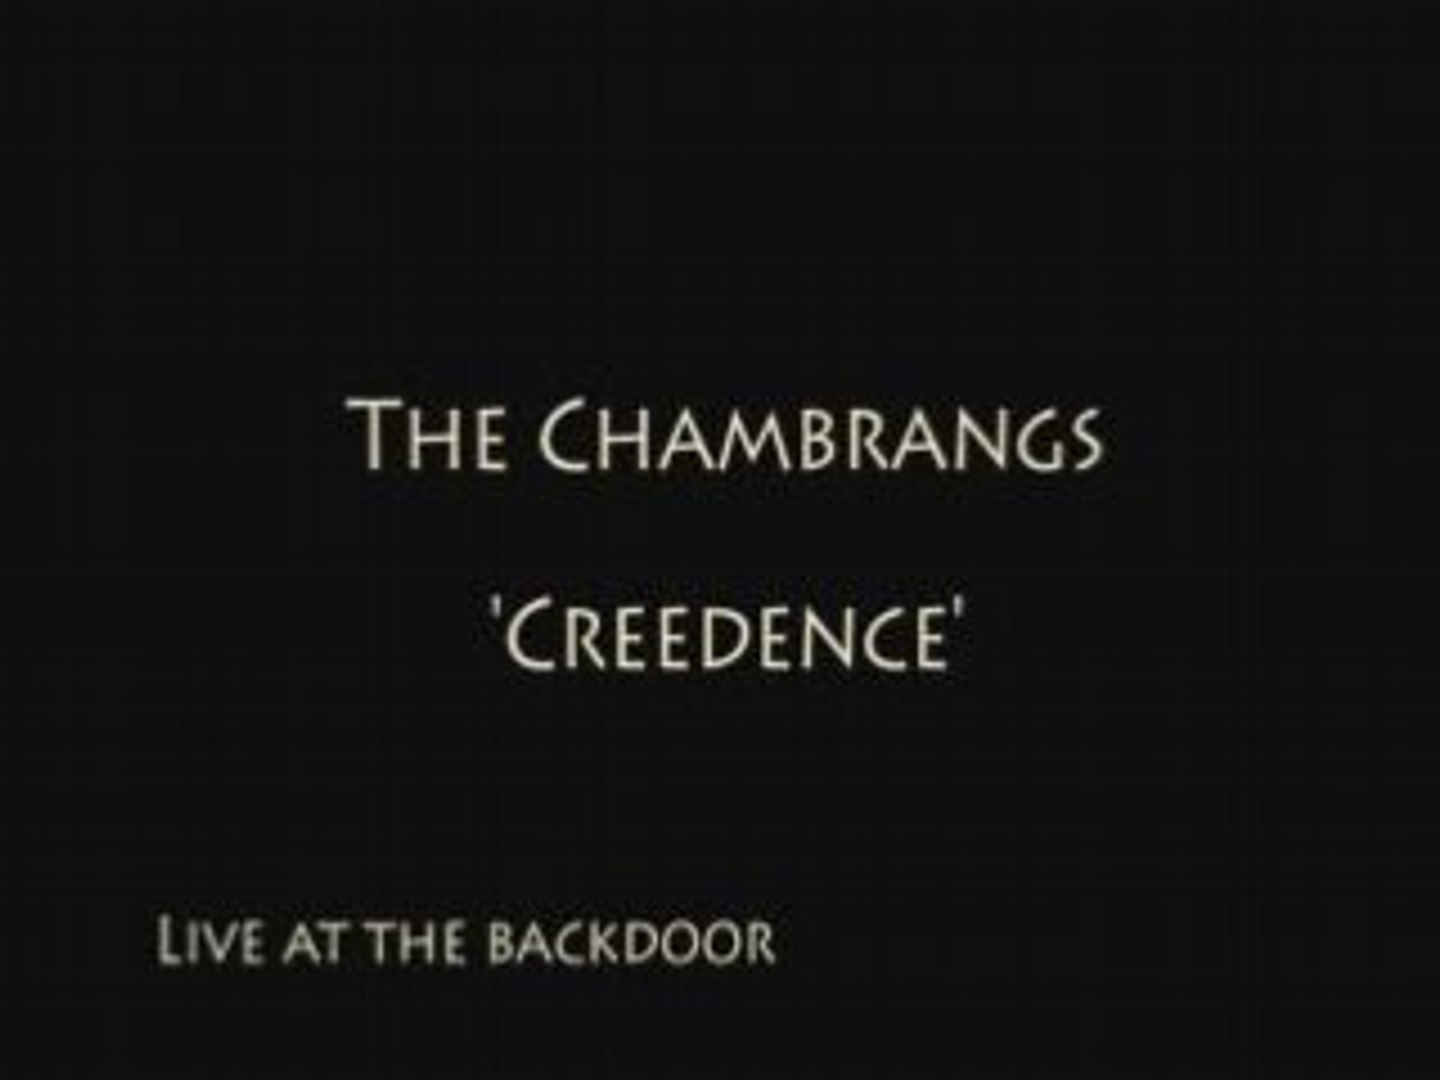 The Chambrangs - Creedence